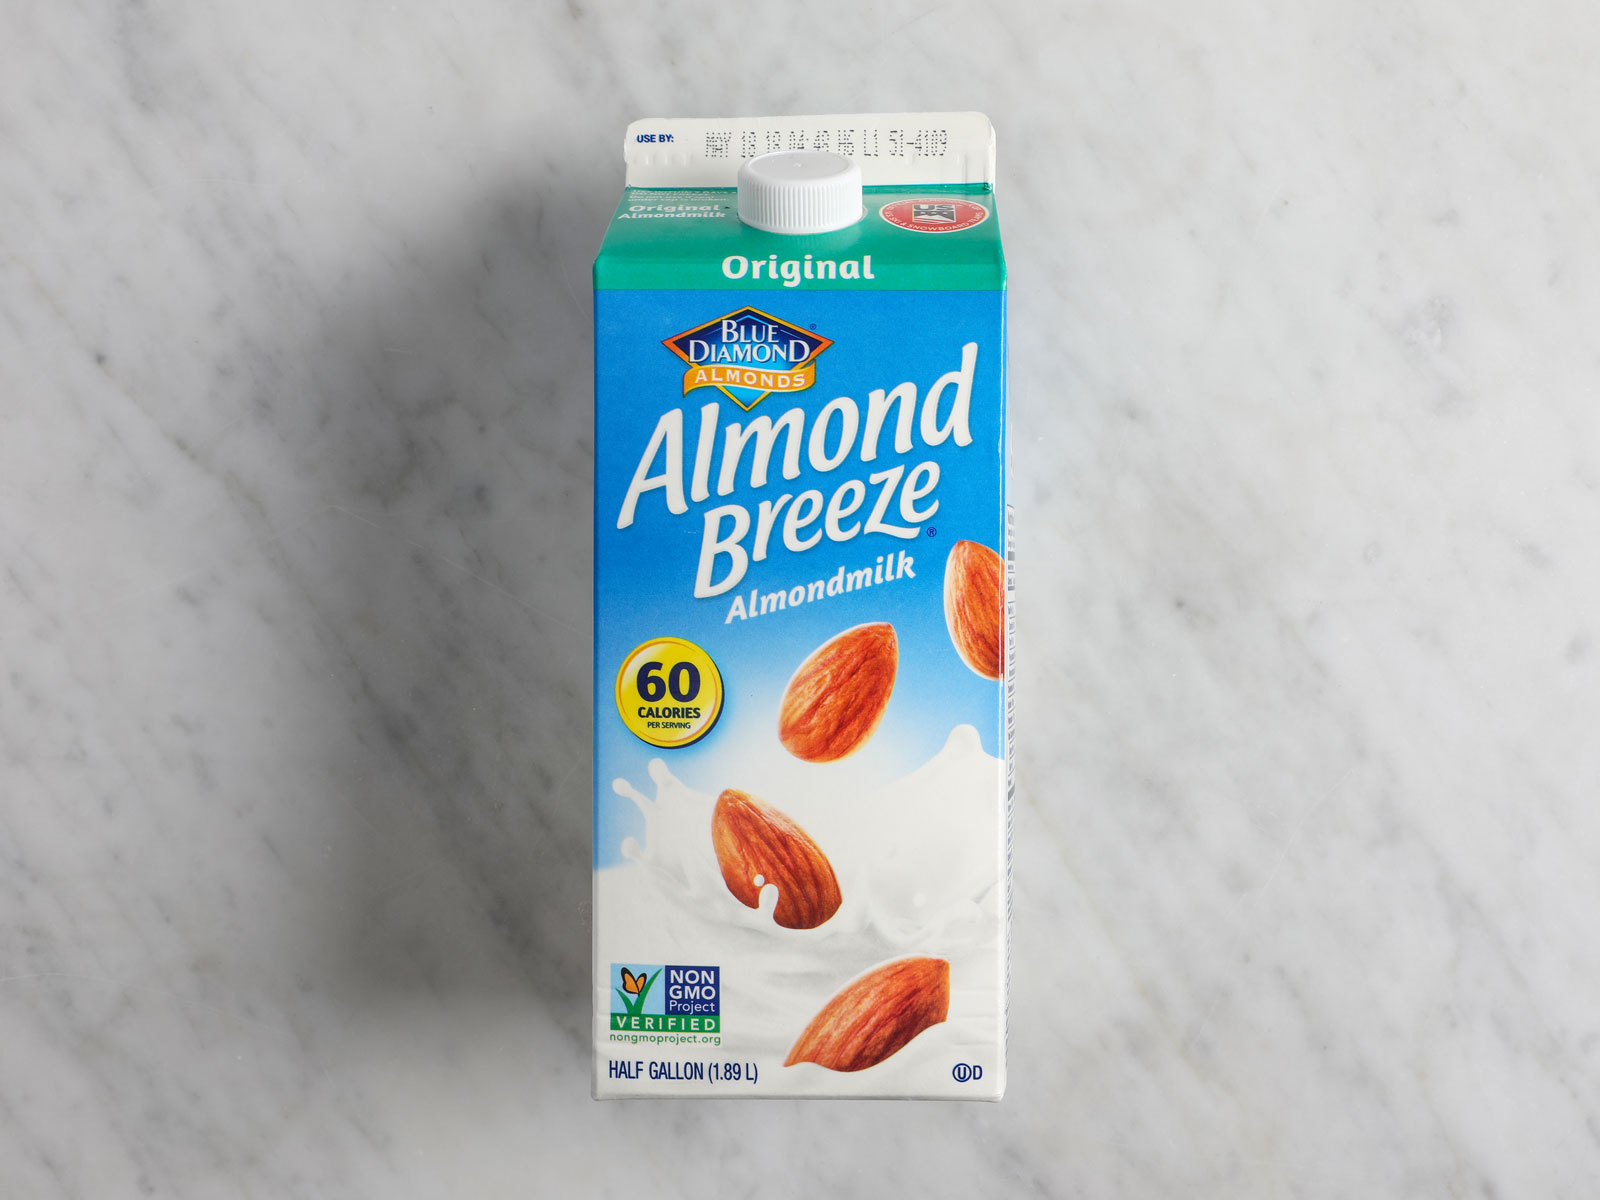 Almondmilk Horchata Is Almond Breeze's Latest Creation